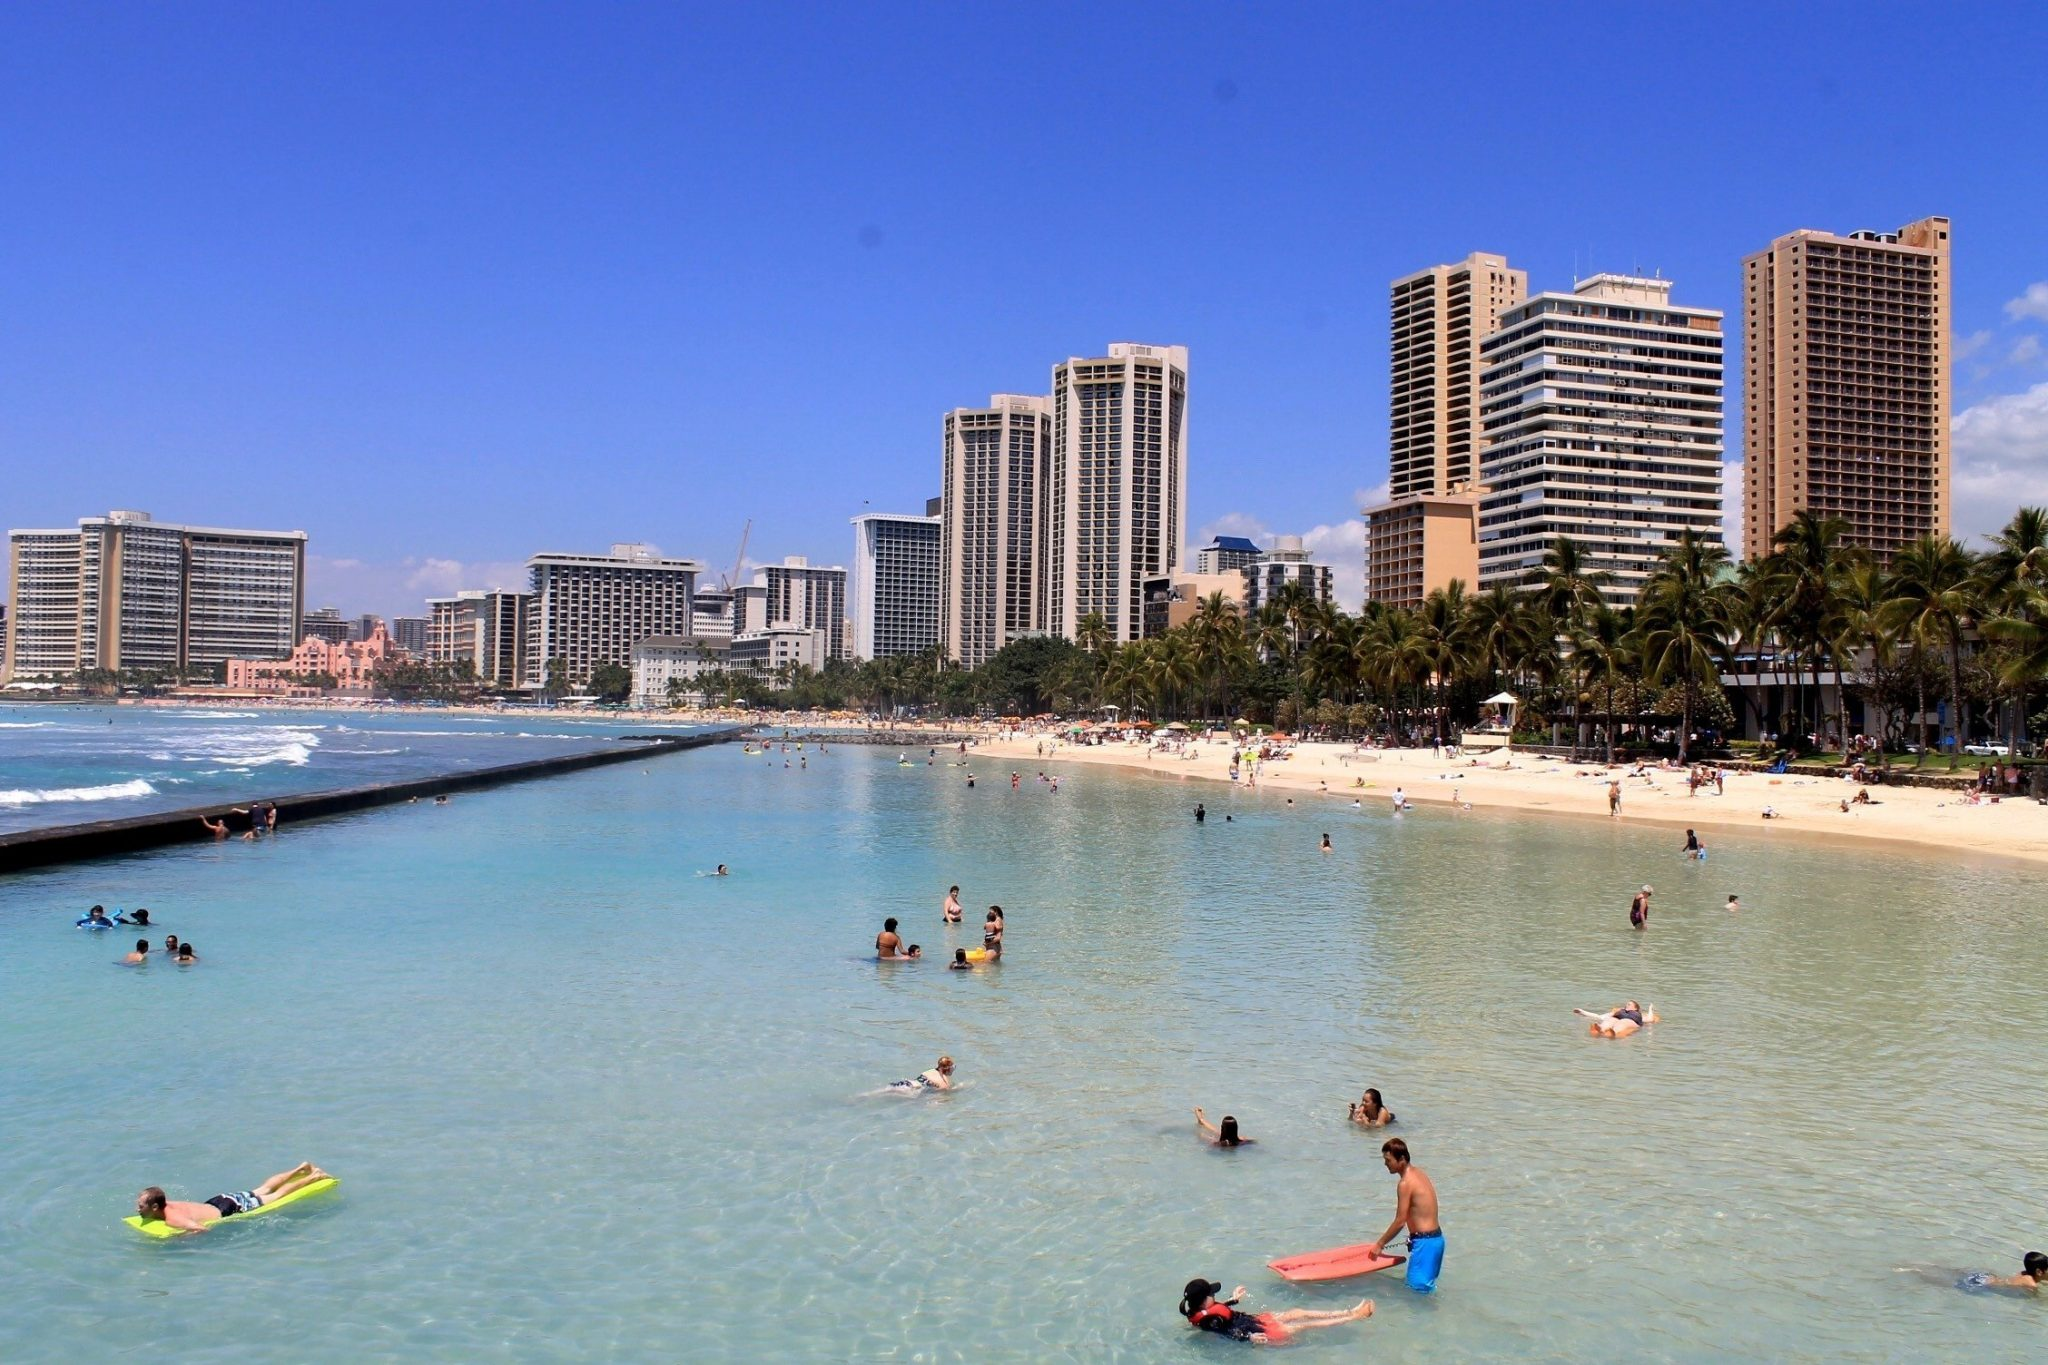 Waikiki Beach - Honolulu, Oahu